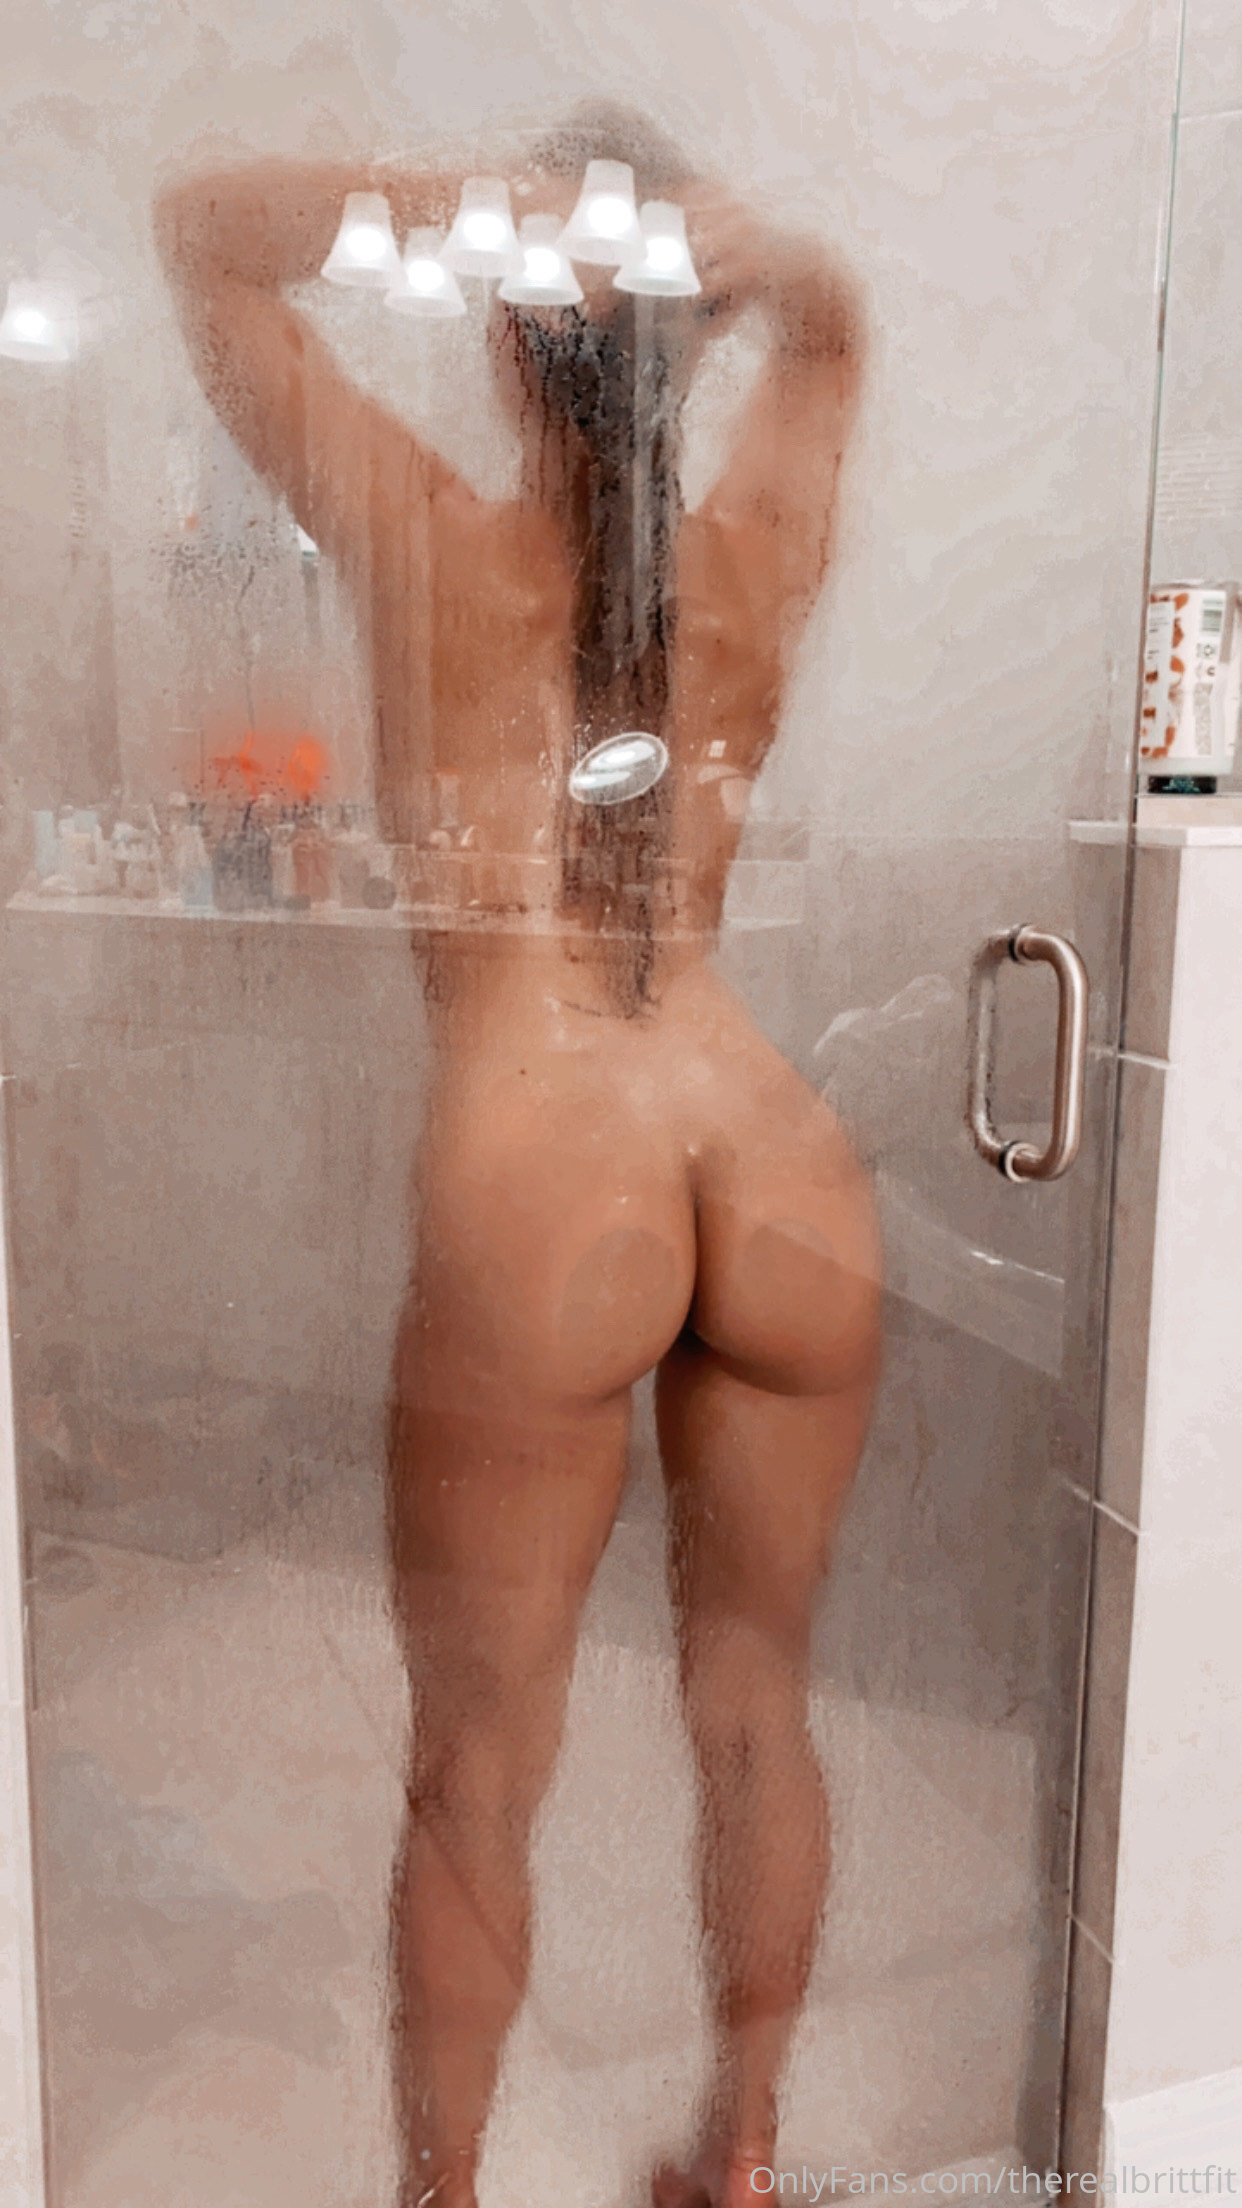 Therealbrittfit Latest Nude Onlyfans Leaked 0006